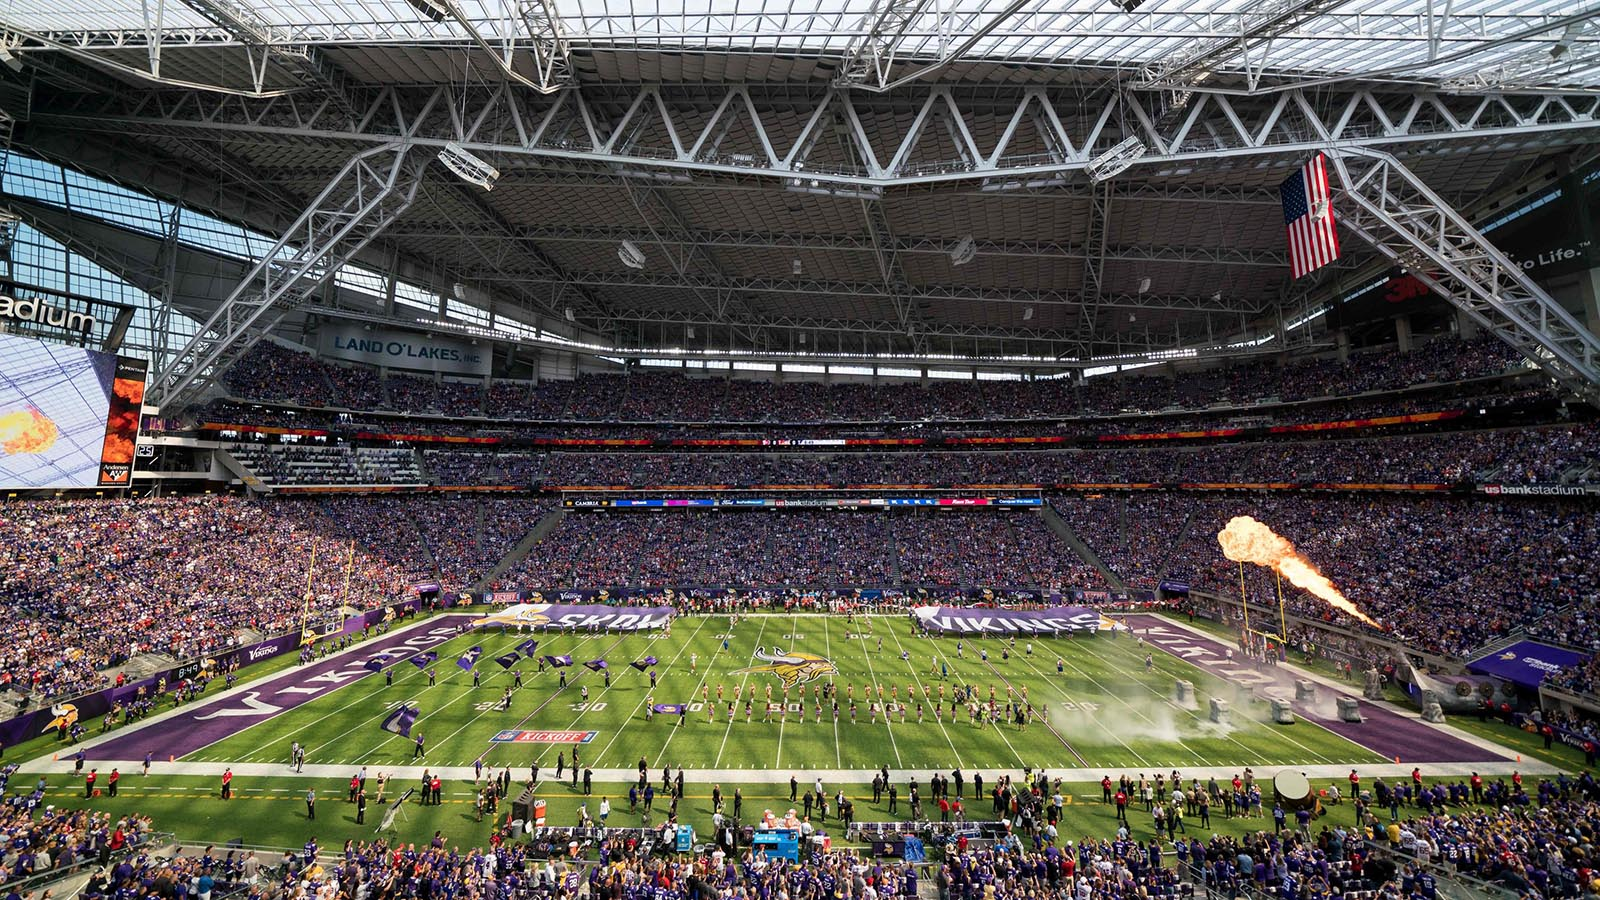 Sep 9, 2018; Minneapolis, MN, USA; A general view of U.S. Bank stadium before the game between the Minnesota Vikings and San Francisco 49ers. Mandatory Credit: Brad Rempel-USA TODAY Sports